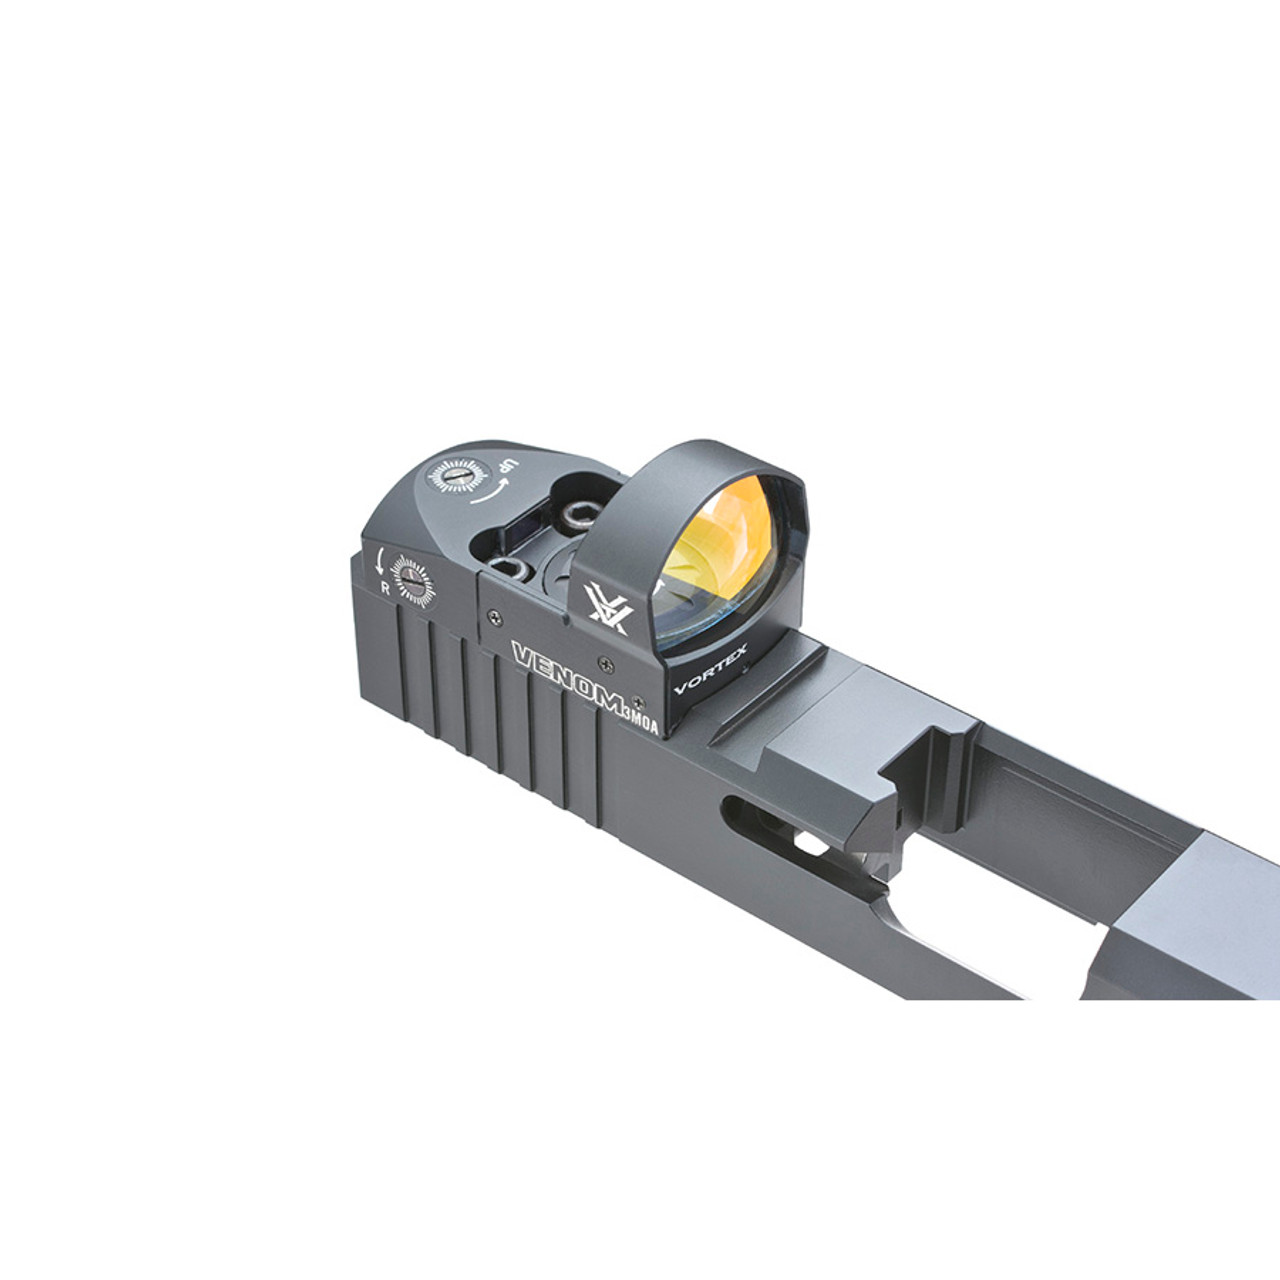 Reasonable Priced Glock Slide to Accommodate Red Dot/RMR